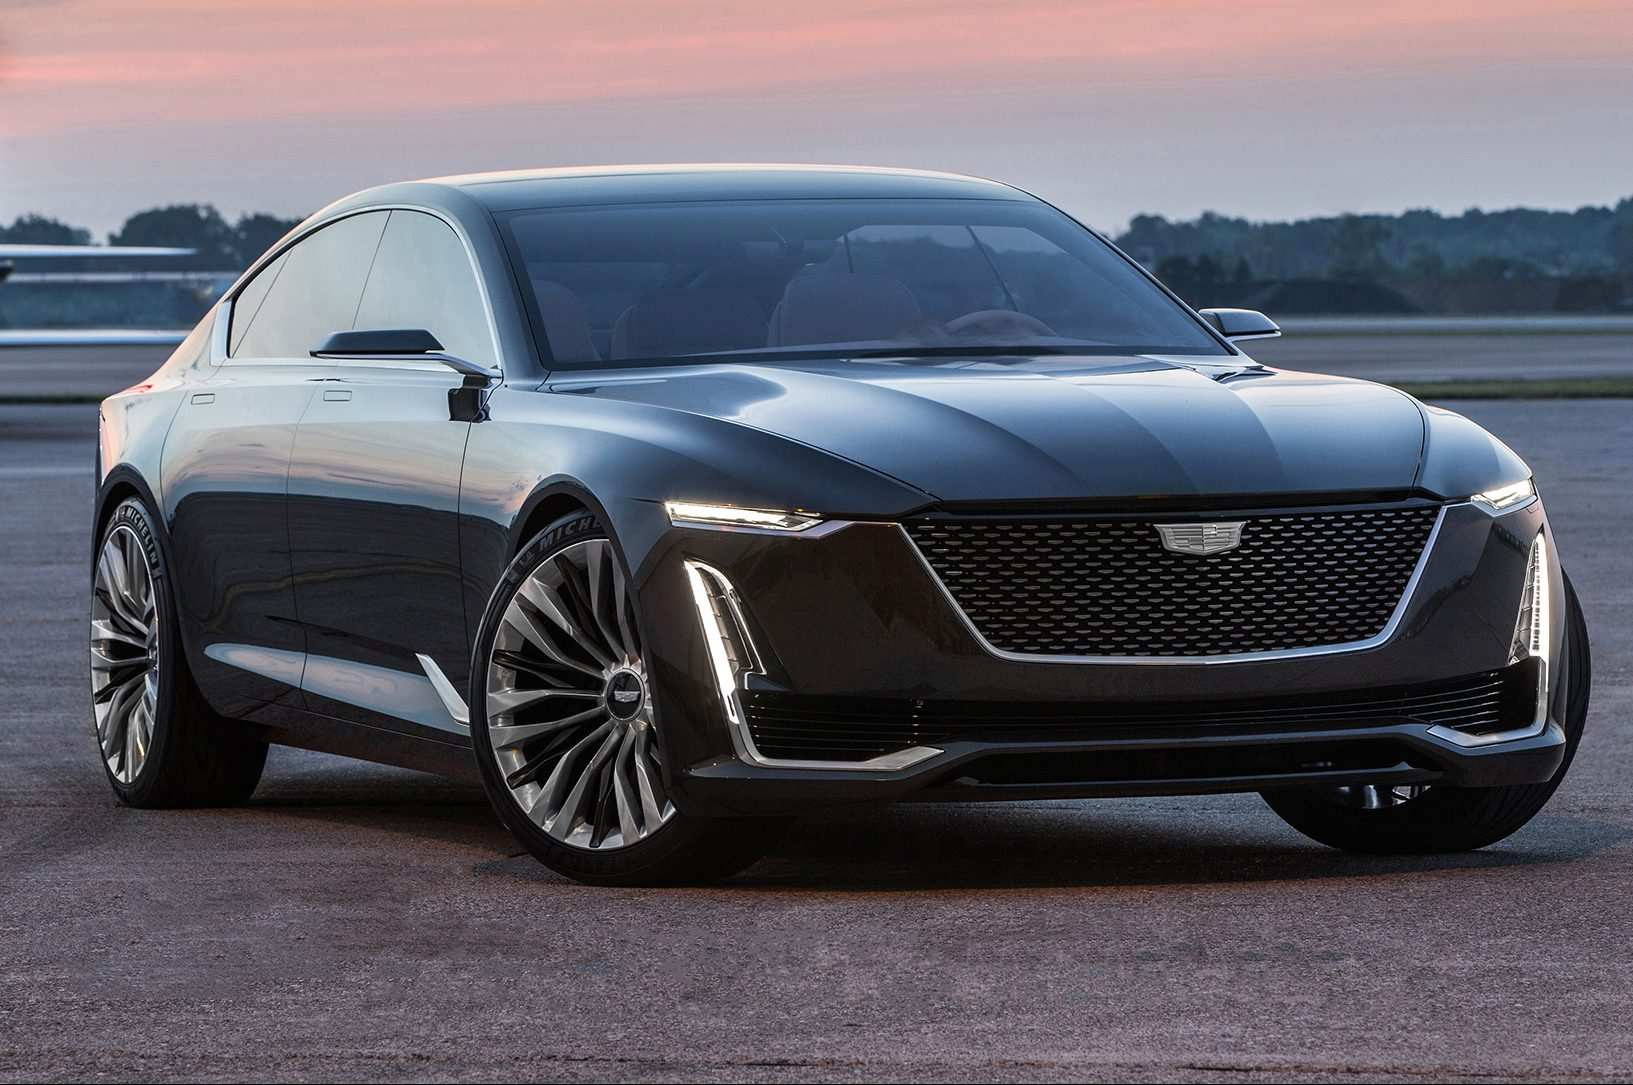 34 Concept of 2020 Cadillac Escalade Msrp Picture for 2020 Cadillac Escalade Msrp